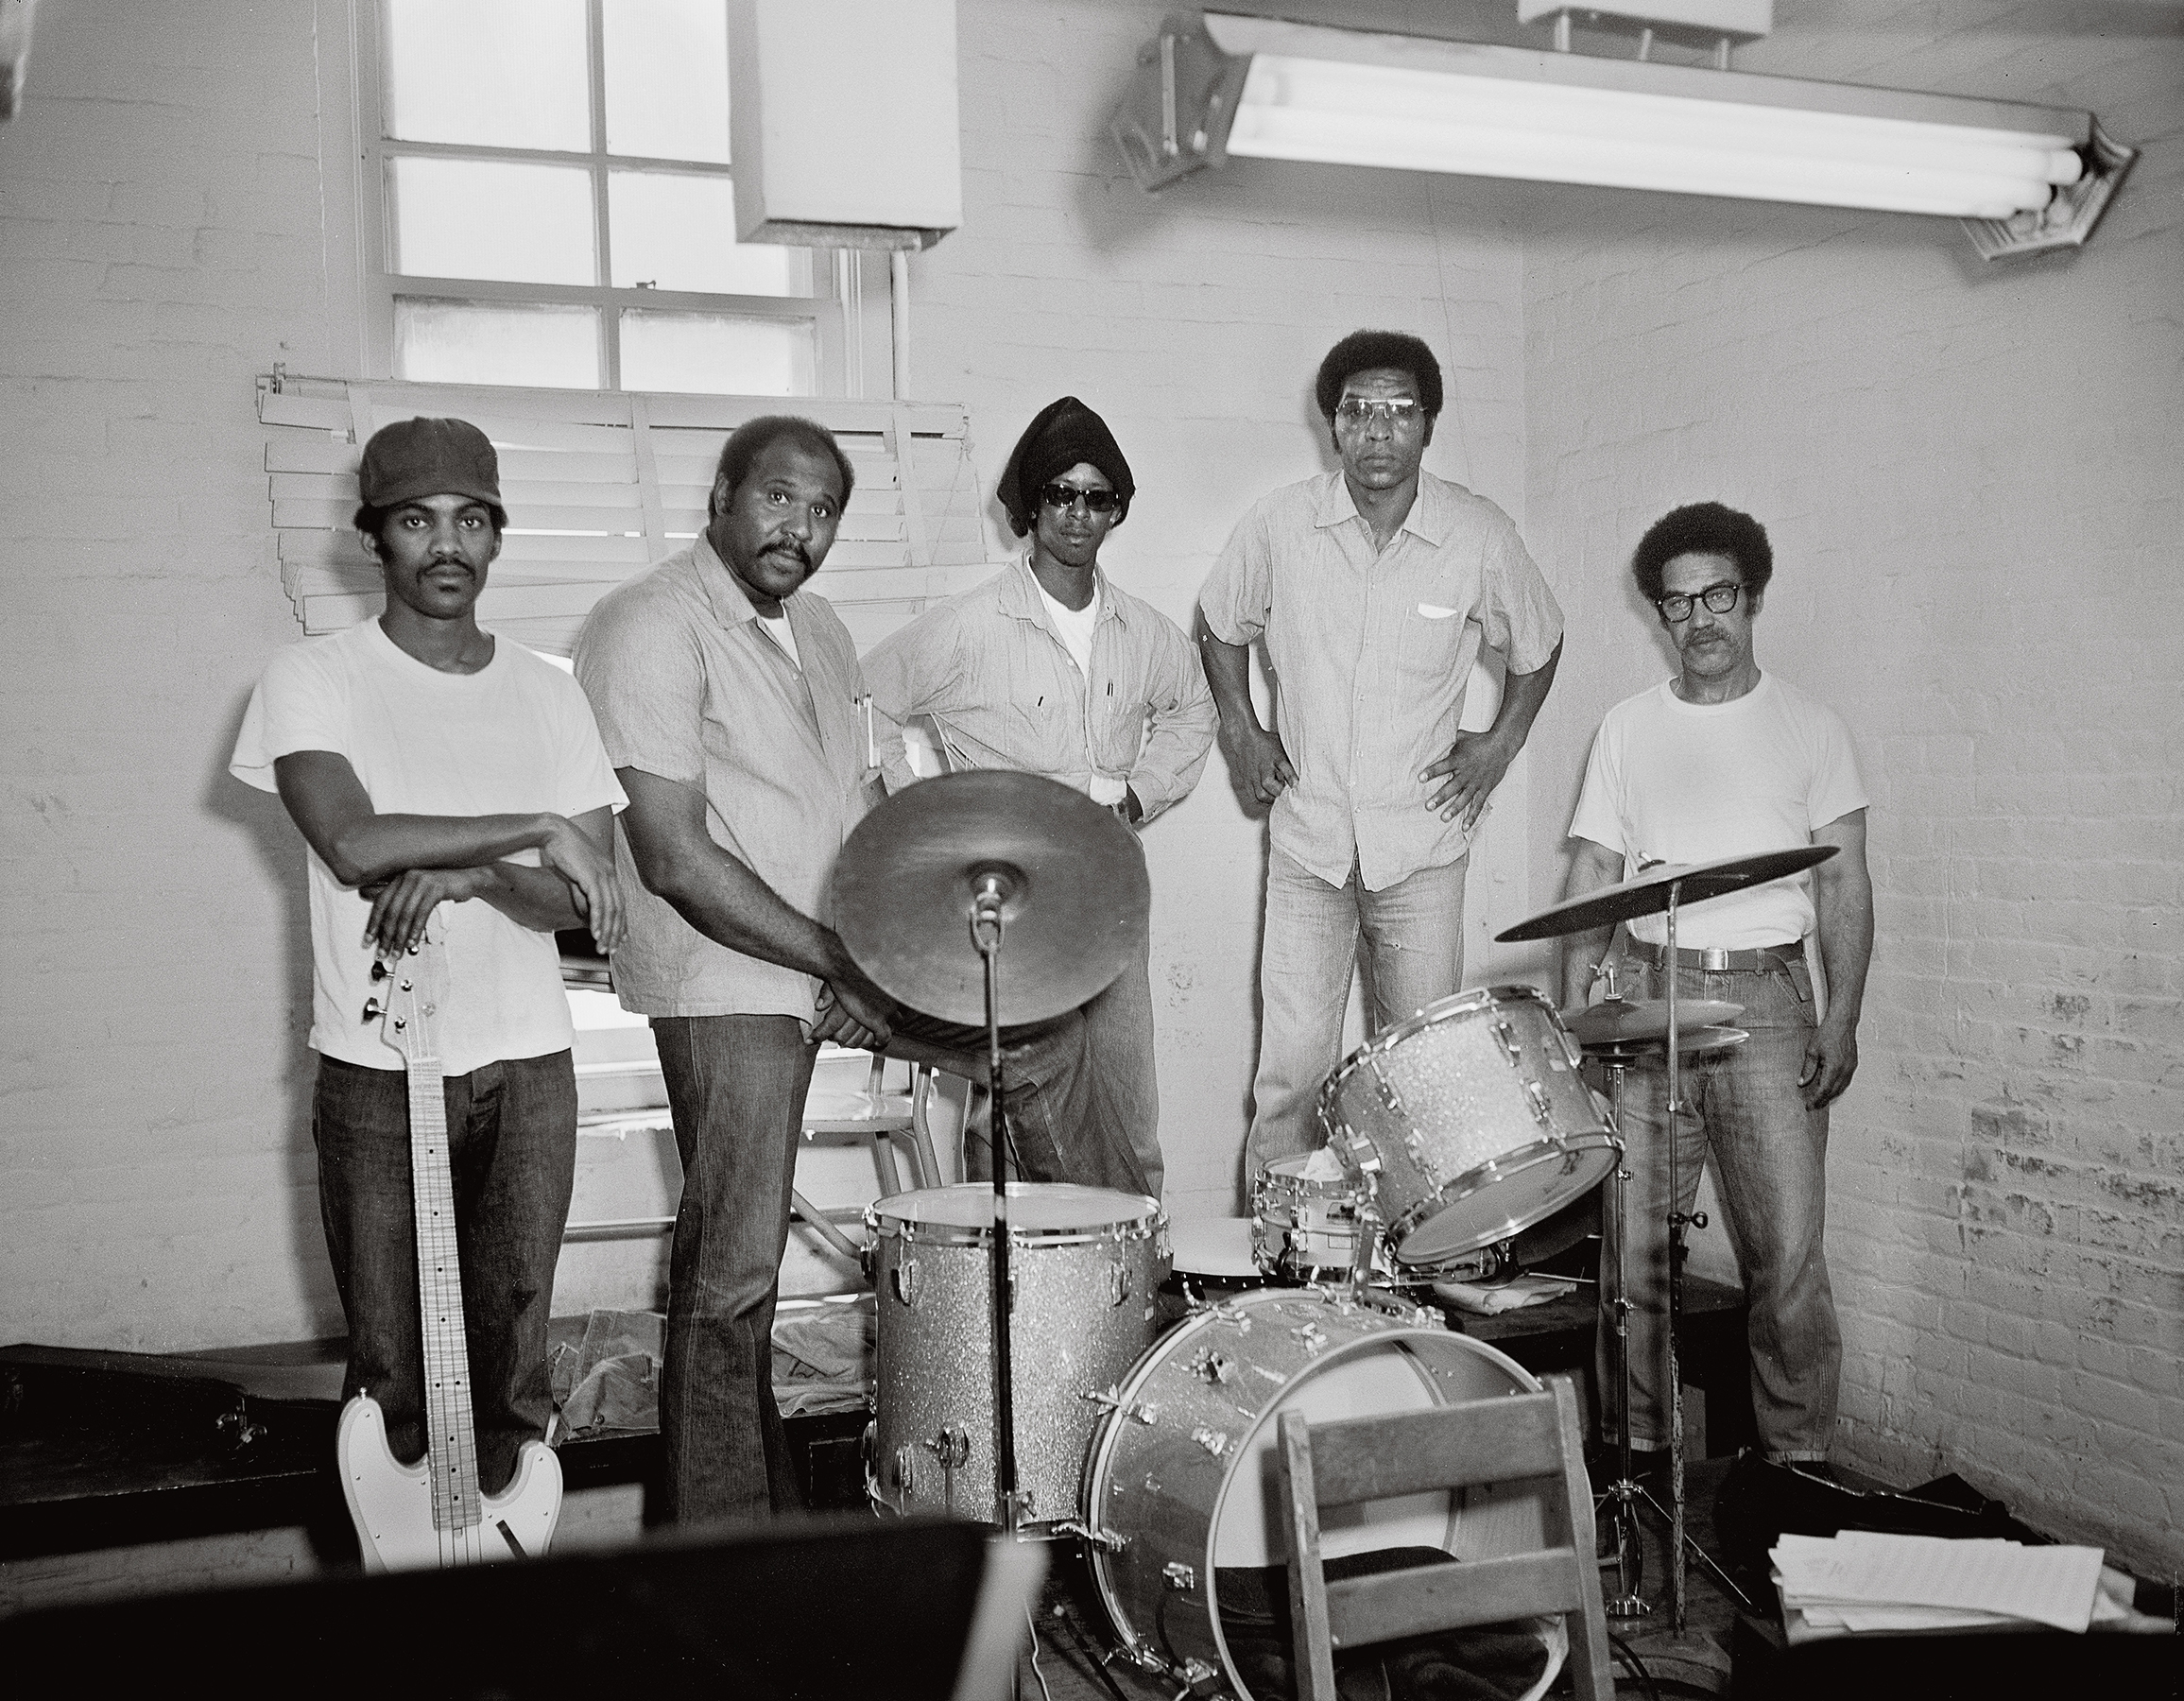 Photographer unknown, Prison Rock Band, San Quentin State Prison, June 26, 1975, Courtesy Nigel Poor